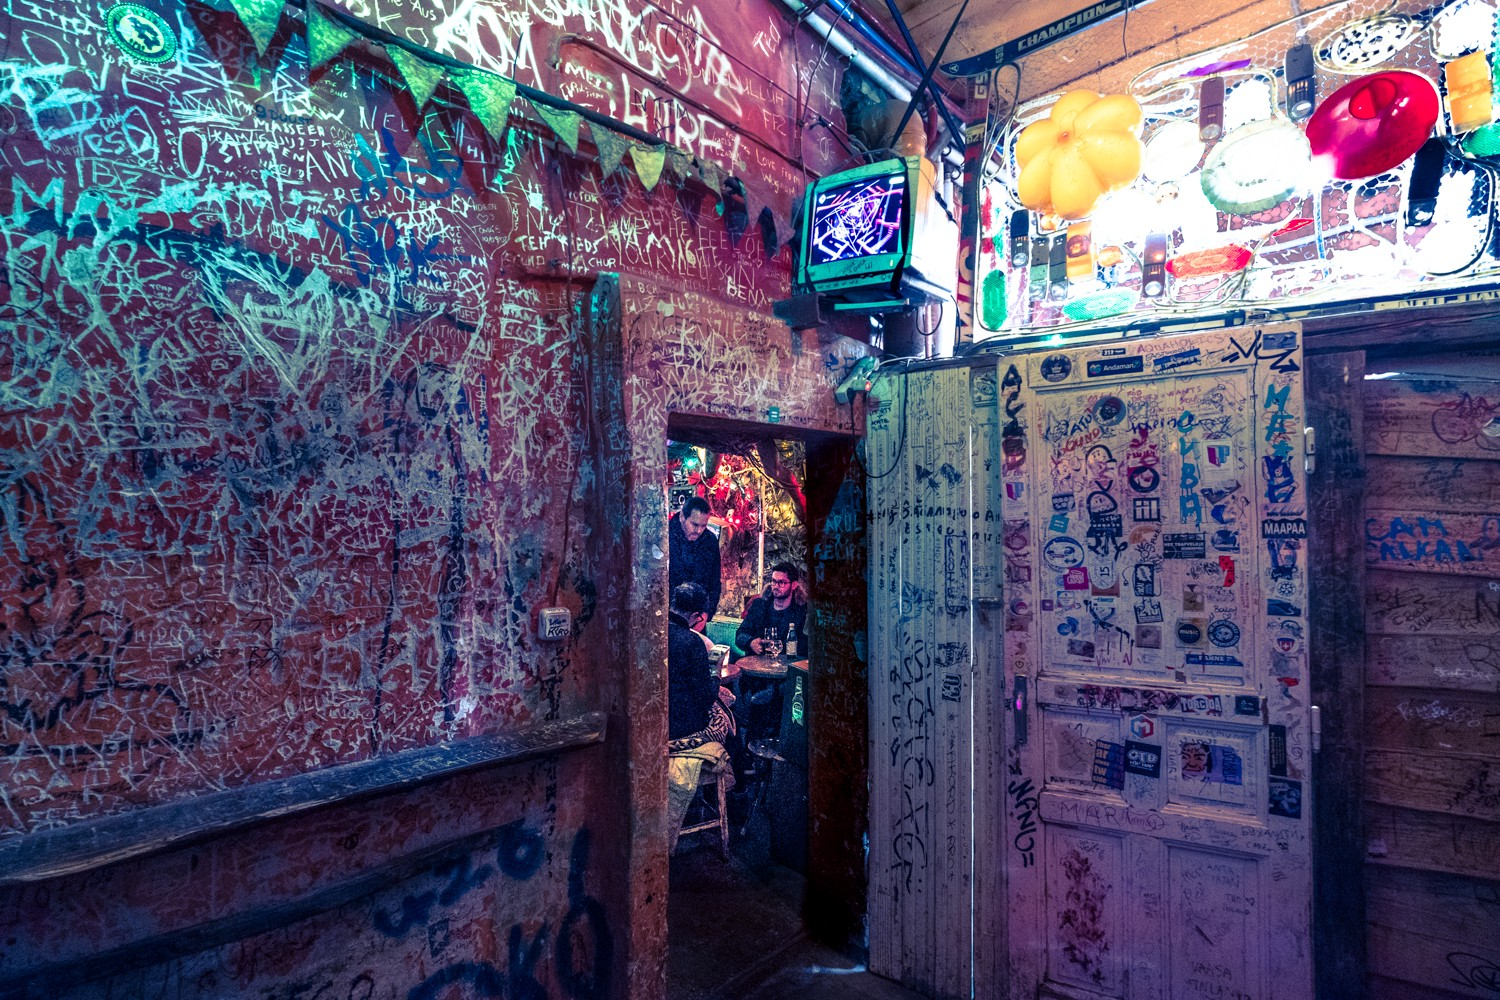 Graffitti on the walls of the ruin pub, Szimpla Kert, Budapest